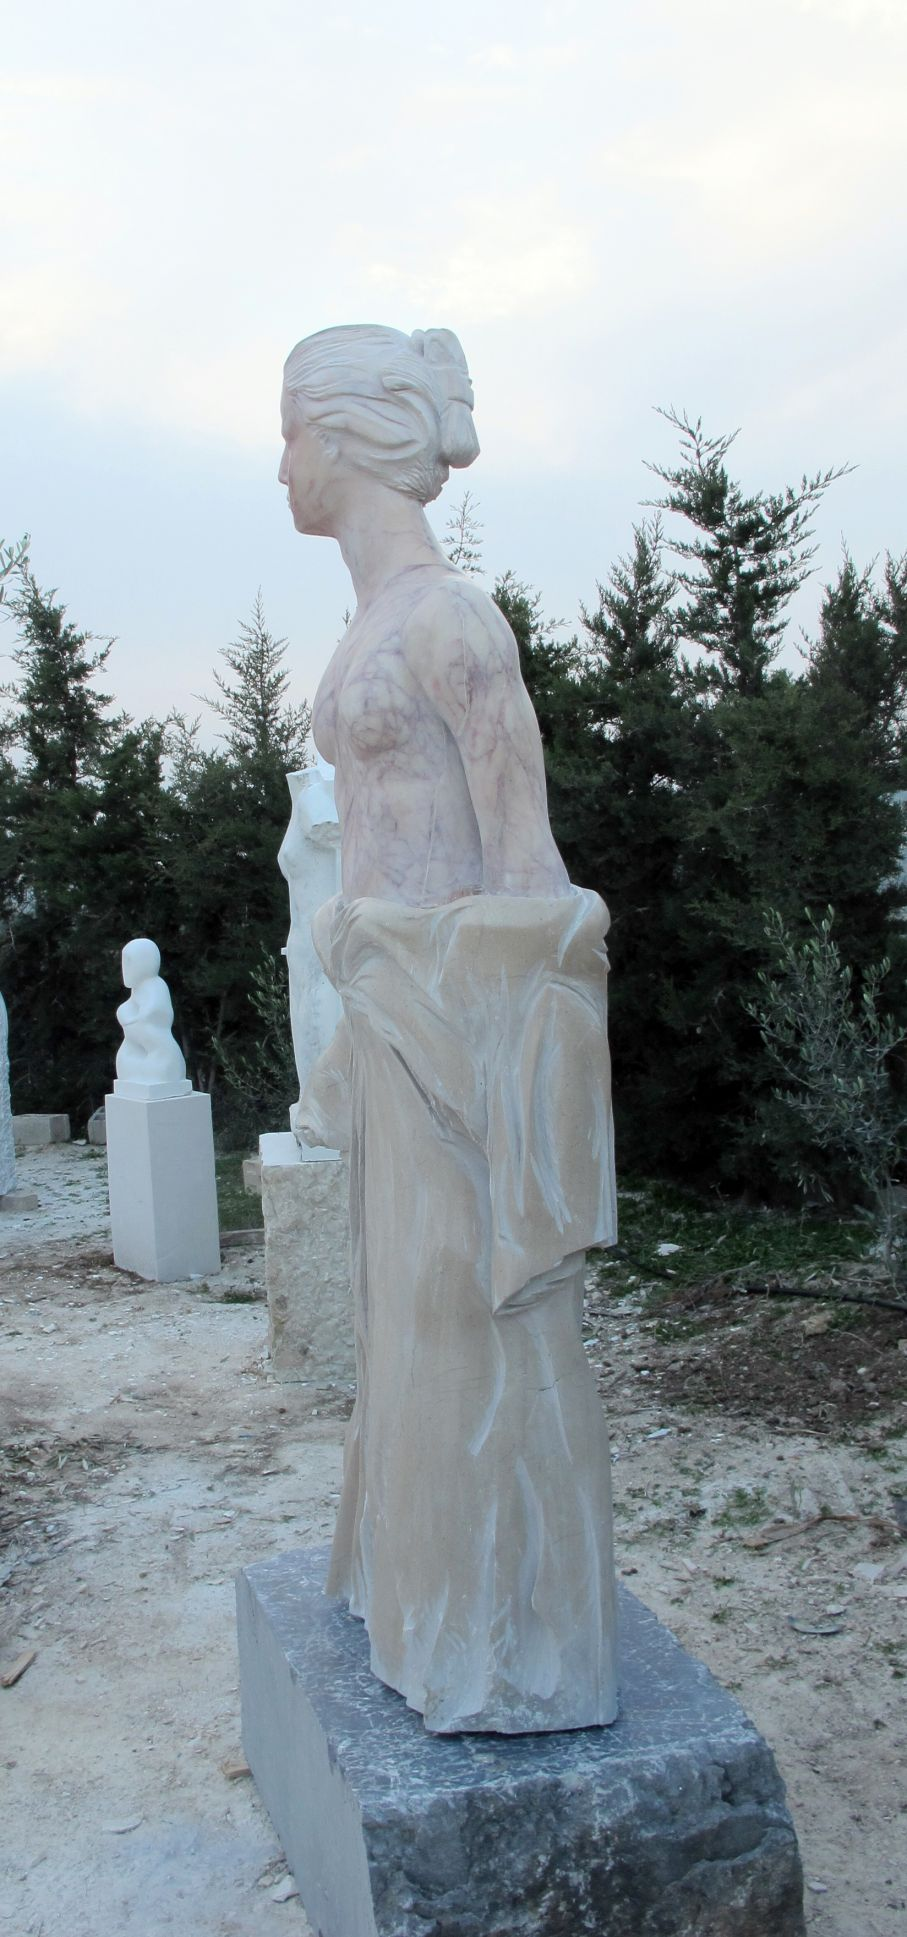 Original marble sculpture of  Stratos Pallas, completed on October 2014, within Myrό Antiques House premises, in Souroti, Thessaloniki, GREECE, as part of the Greek Marble Initiative.  Dimensions: 228 X 54 X 98 cm (with the depicted base).